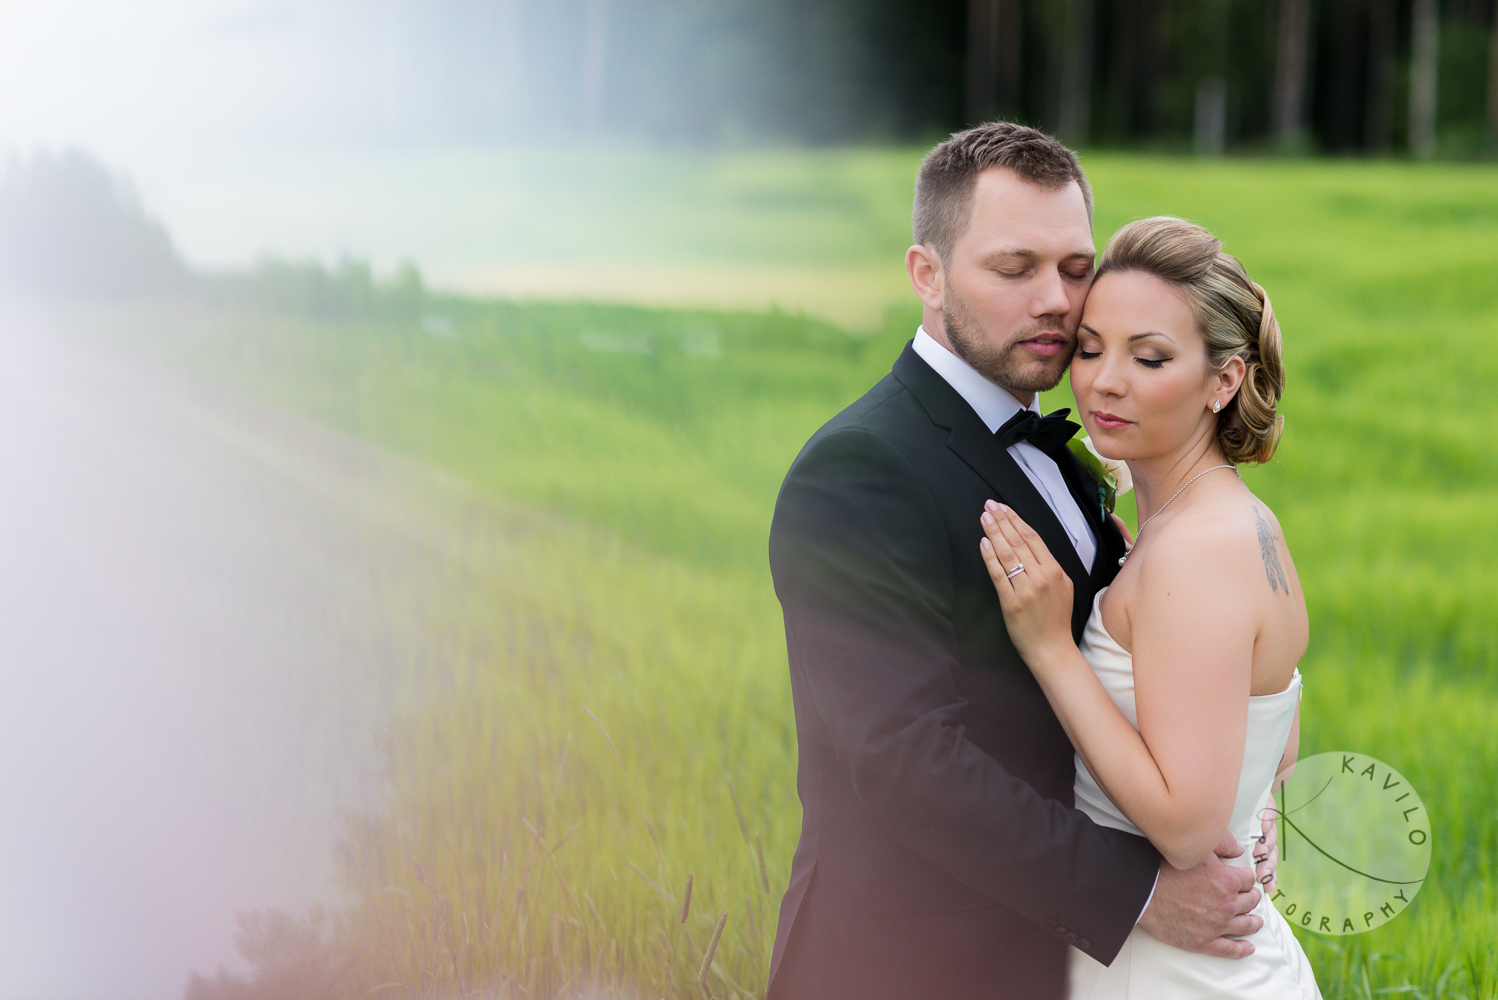 Helena + Staffan Watermark by Kavilo Photography-18.jpg